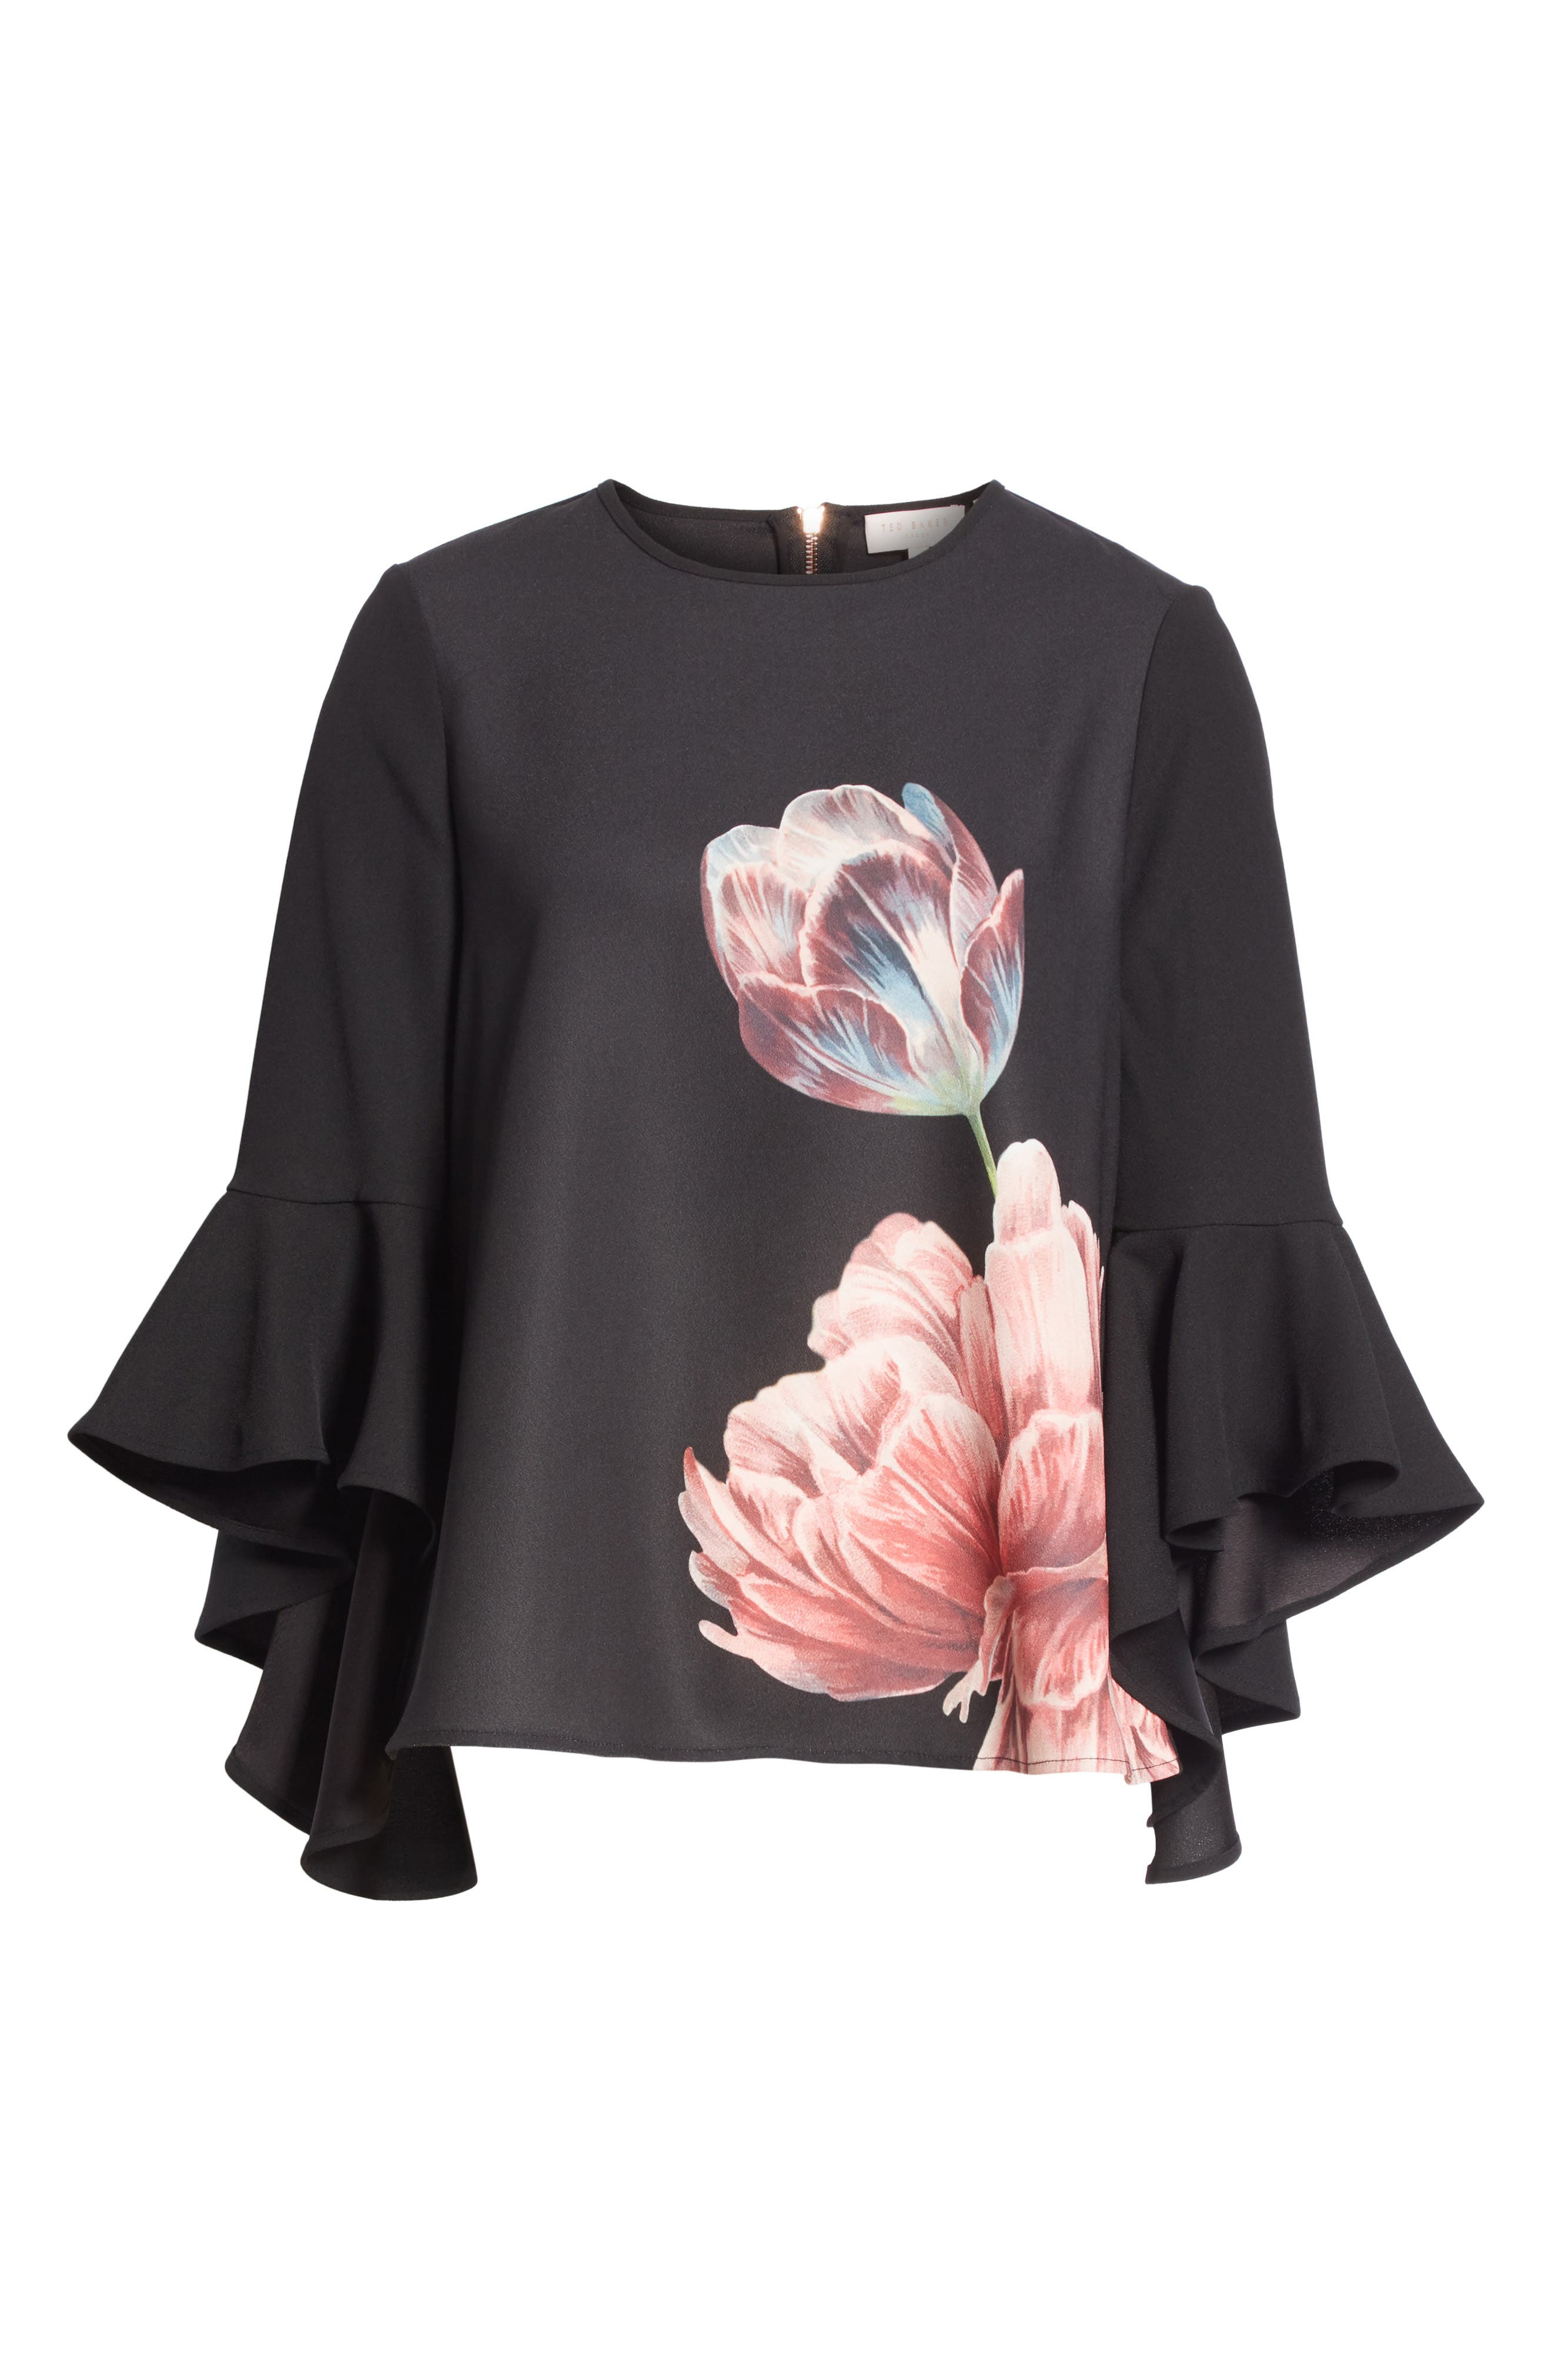 TED BAKER LONDON,                             Suuzan Tranquility Waterfall Top,                             Alternate thumbnail 6, color,                             001